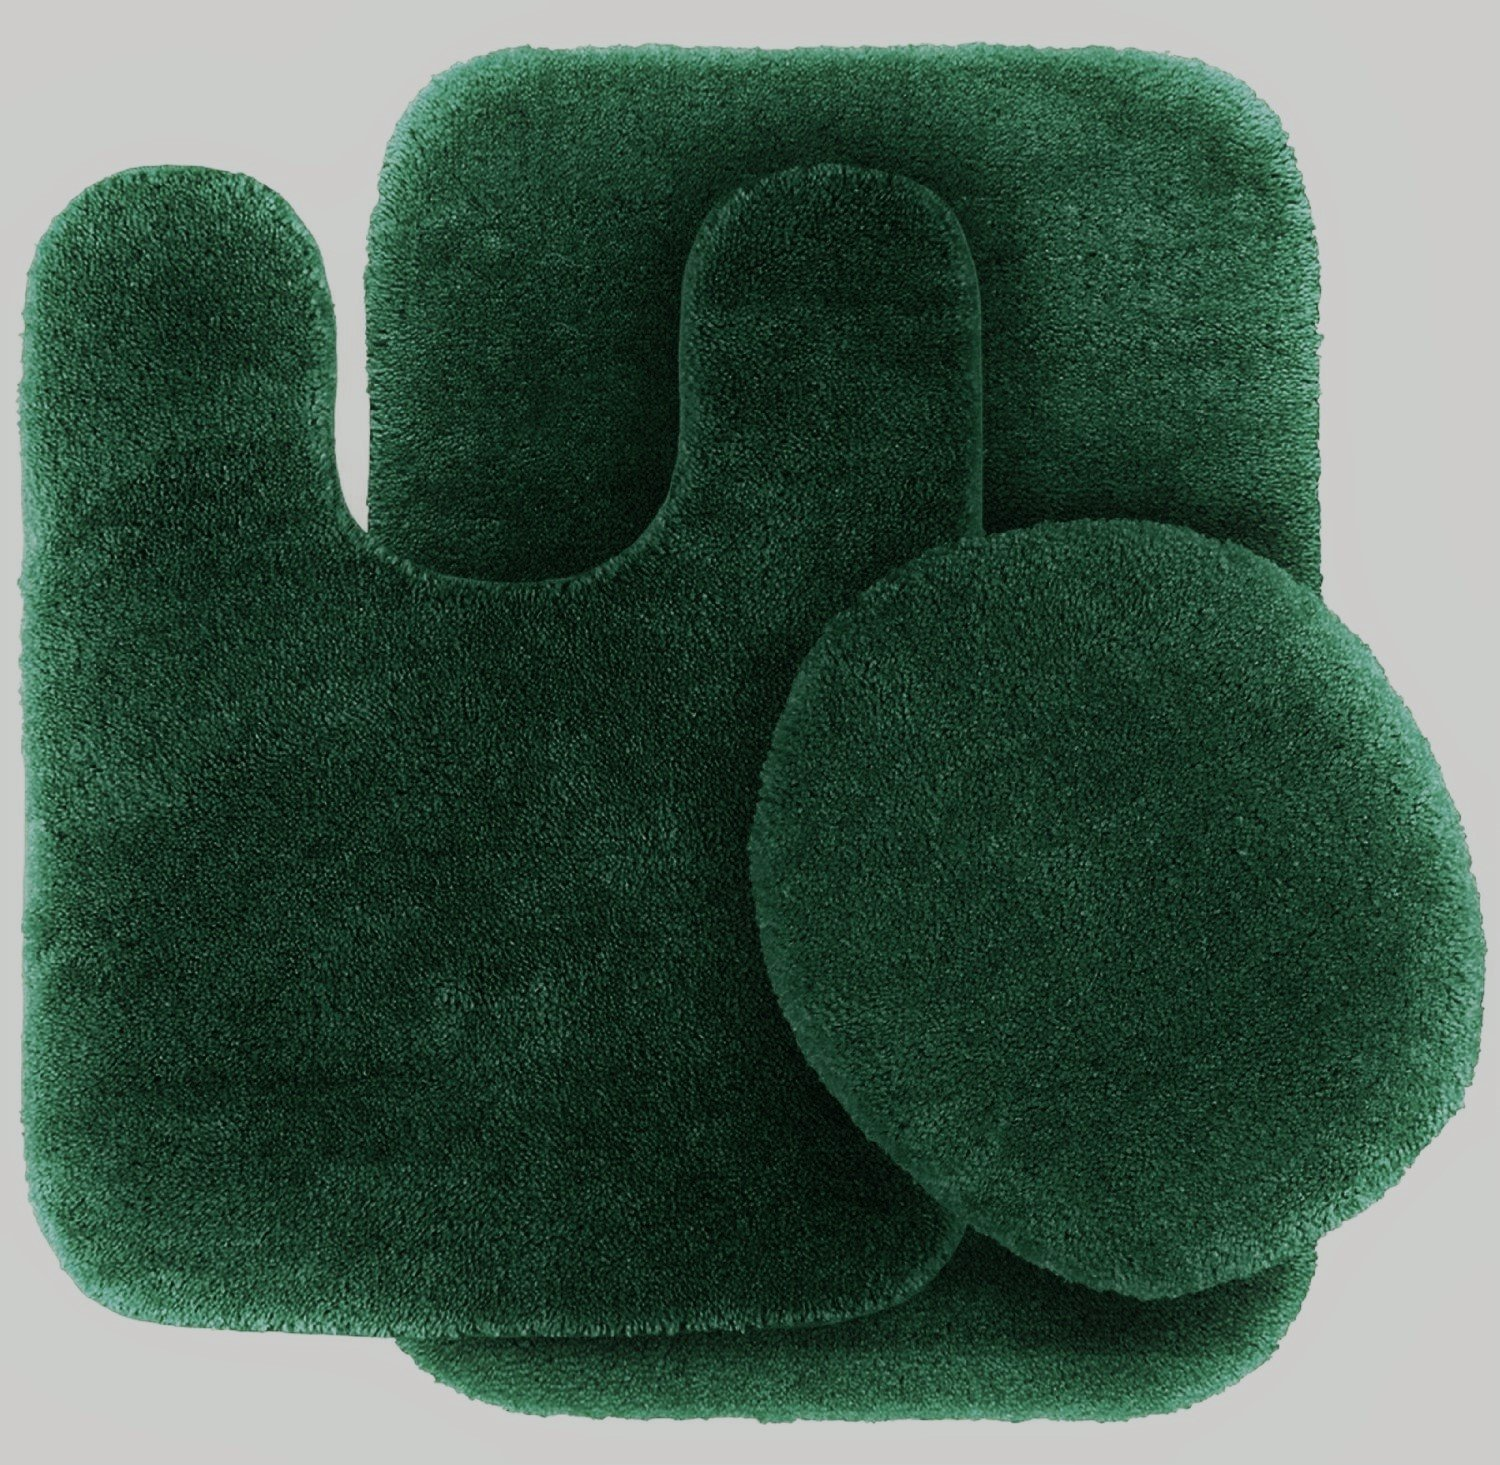 3 Pc HUNTER GREEN  Bathroom Set Bath Mat RUG, Contour, and Toilet Lid Cover, with Rubber Backing #6